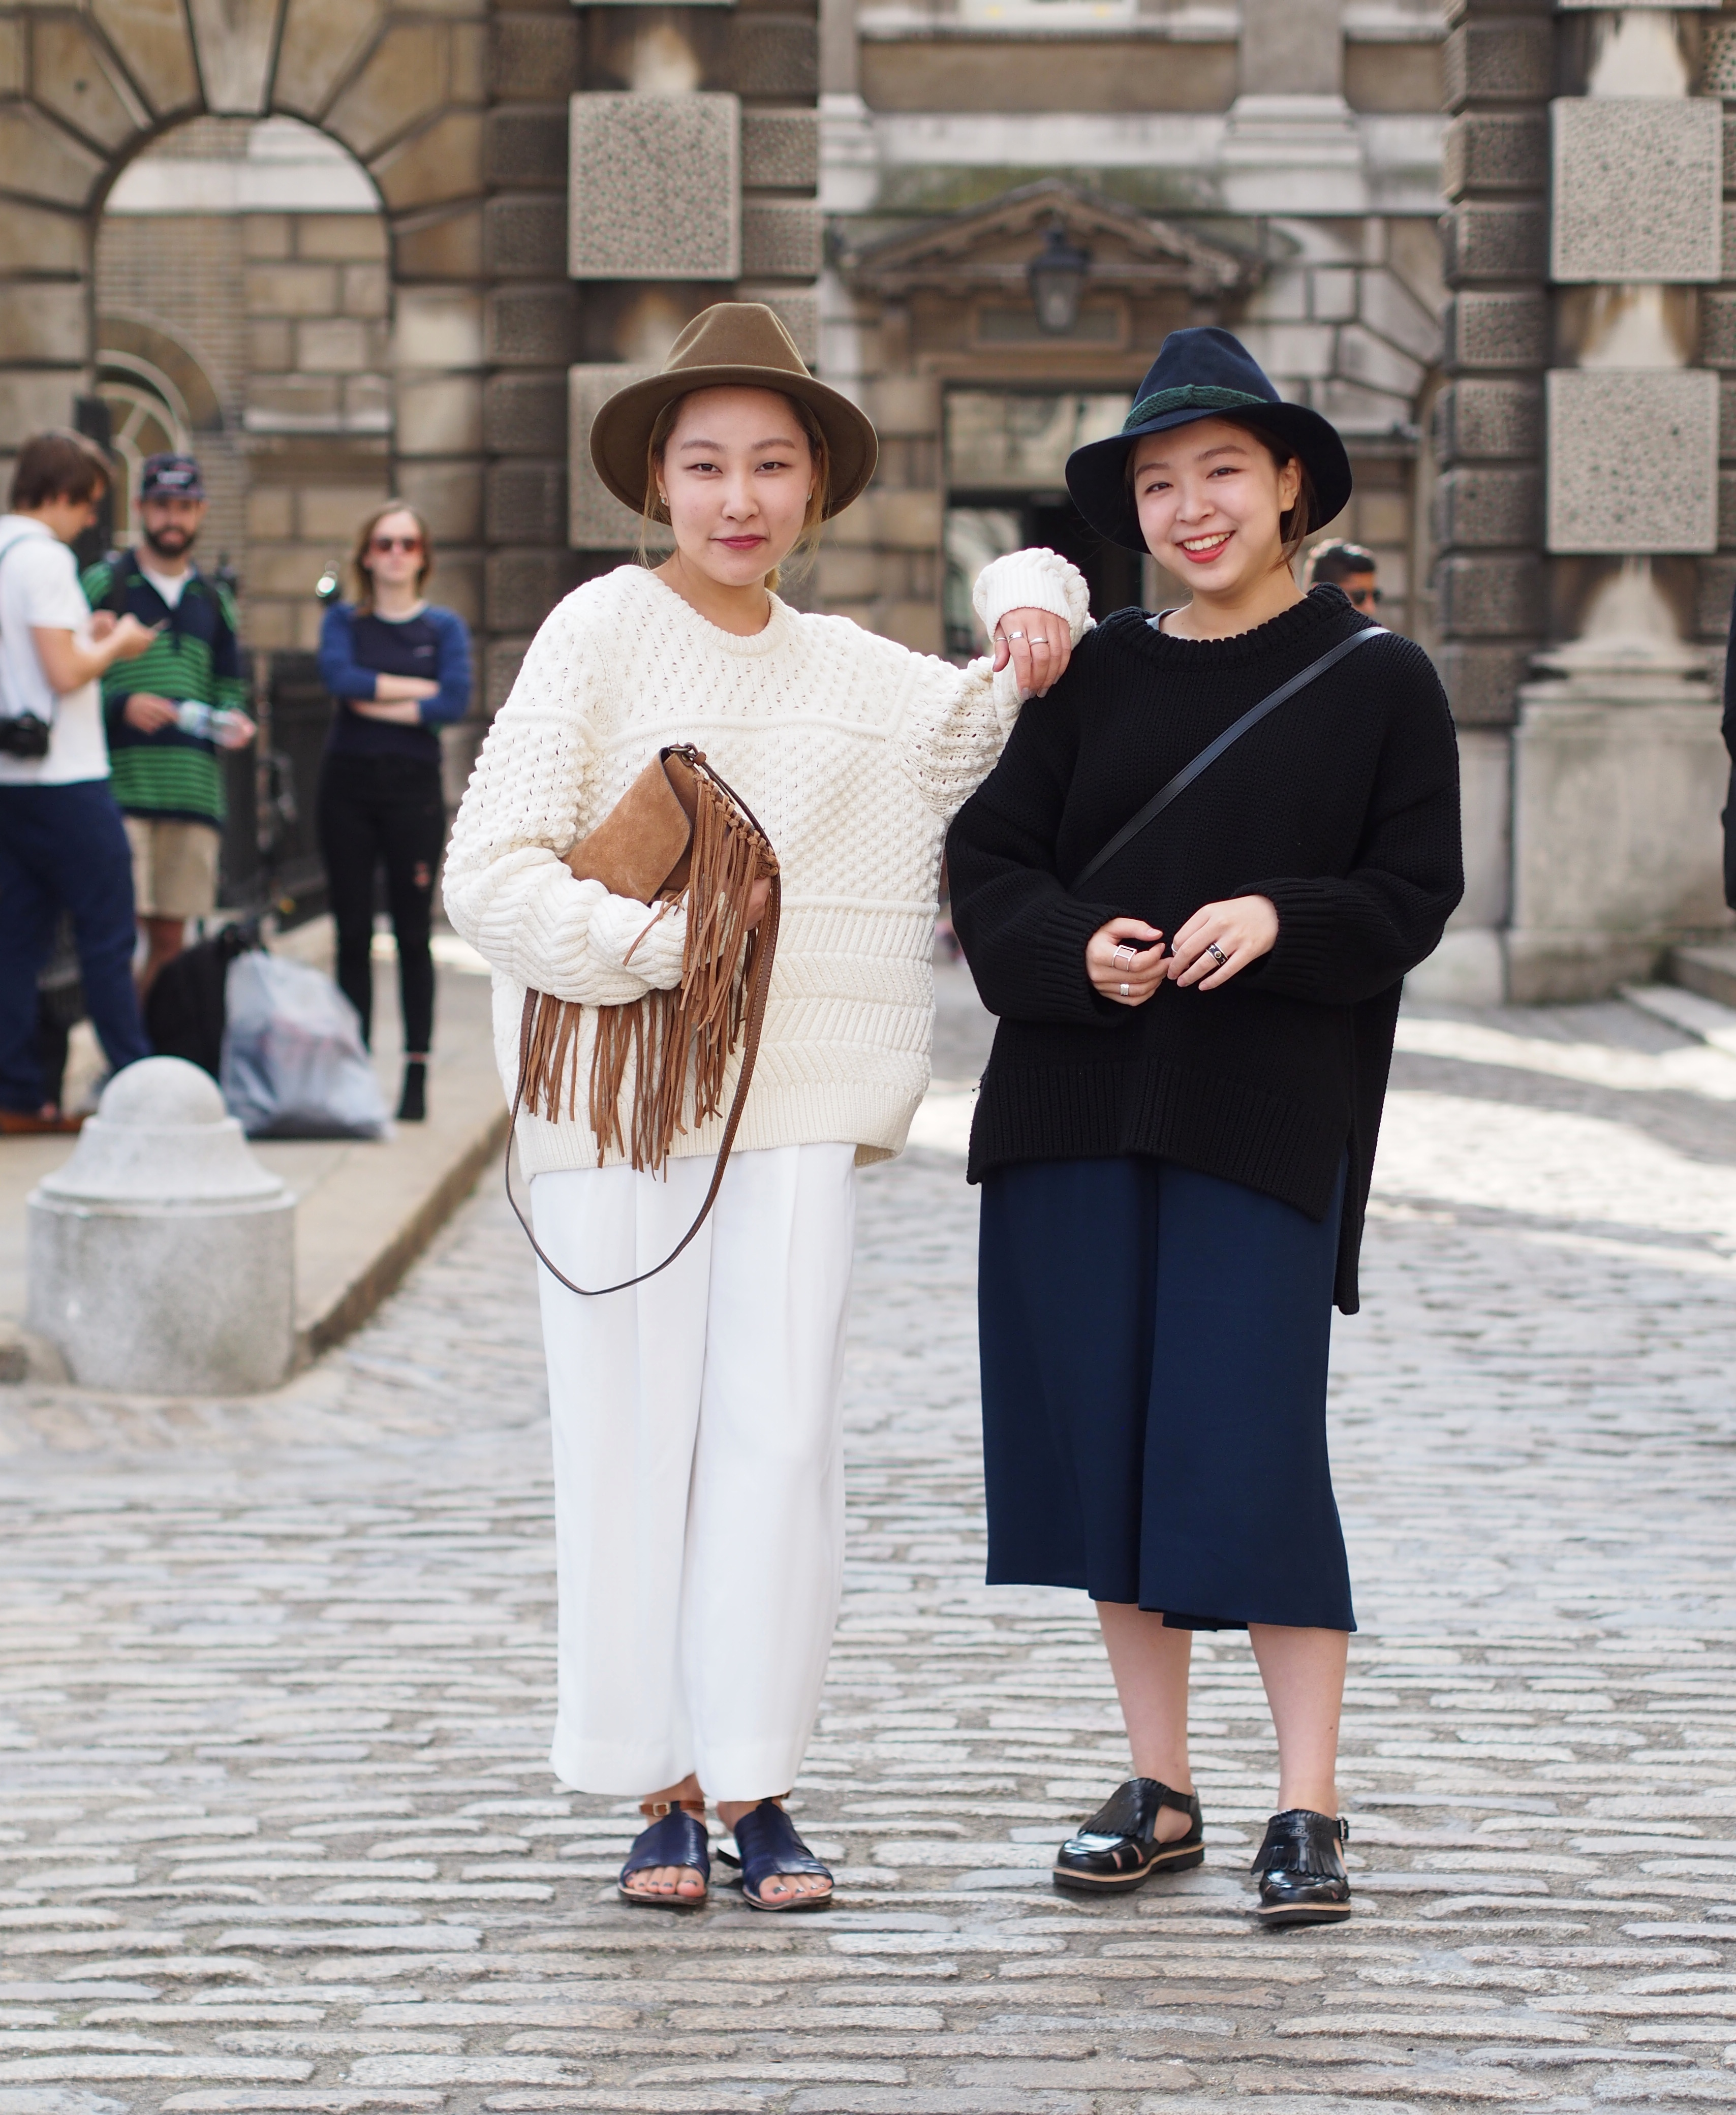 London Fashionweek Street Style at Somerset House London